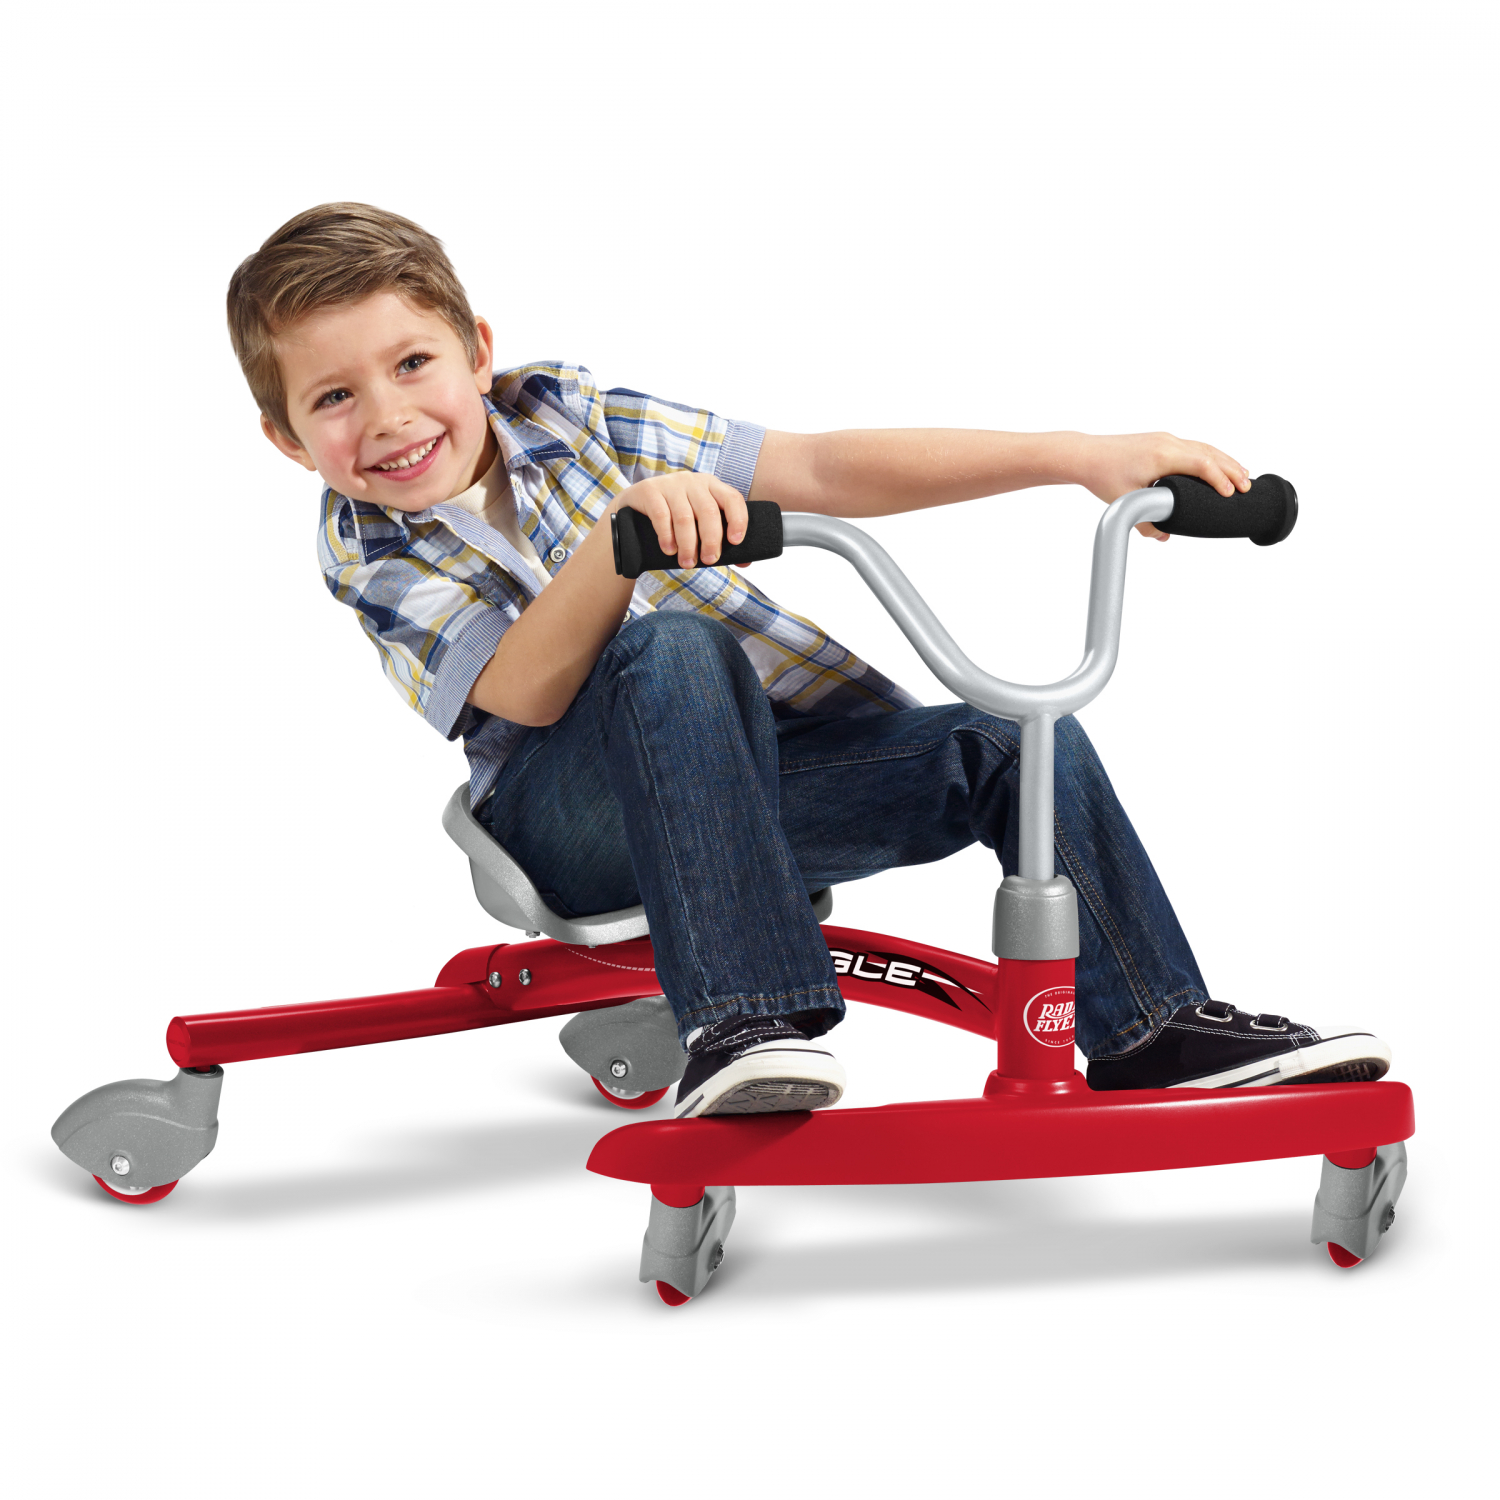 thumbnail 25 - Radio-Flyer-Ziggle-Caster-Ride-on-For-Kids-360-Degree-Spins-Red-Pink-Boys-Girls